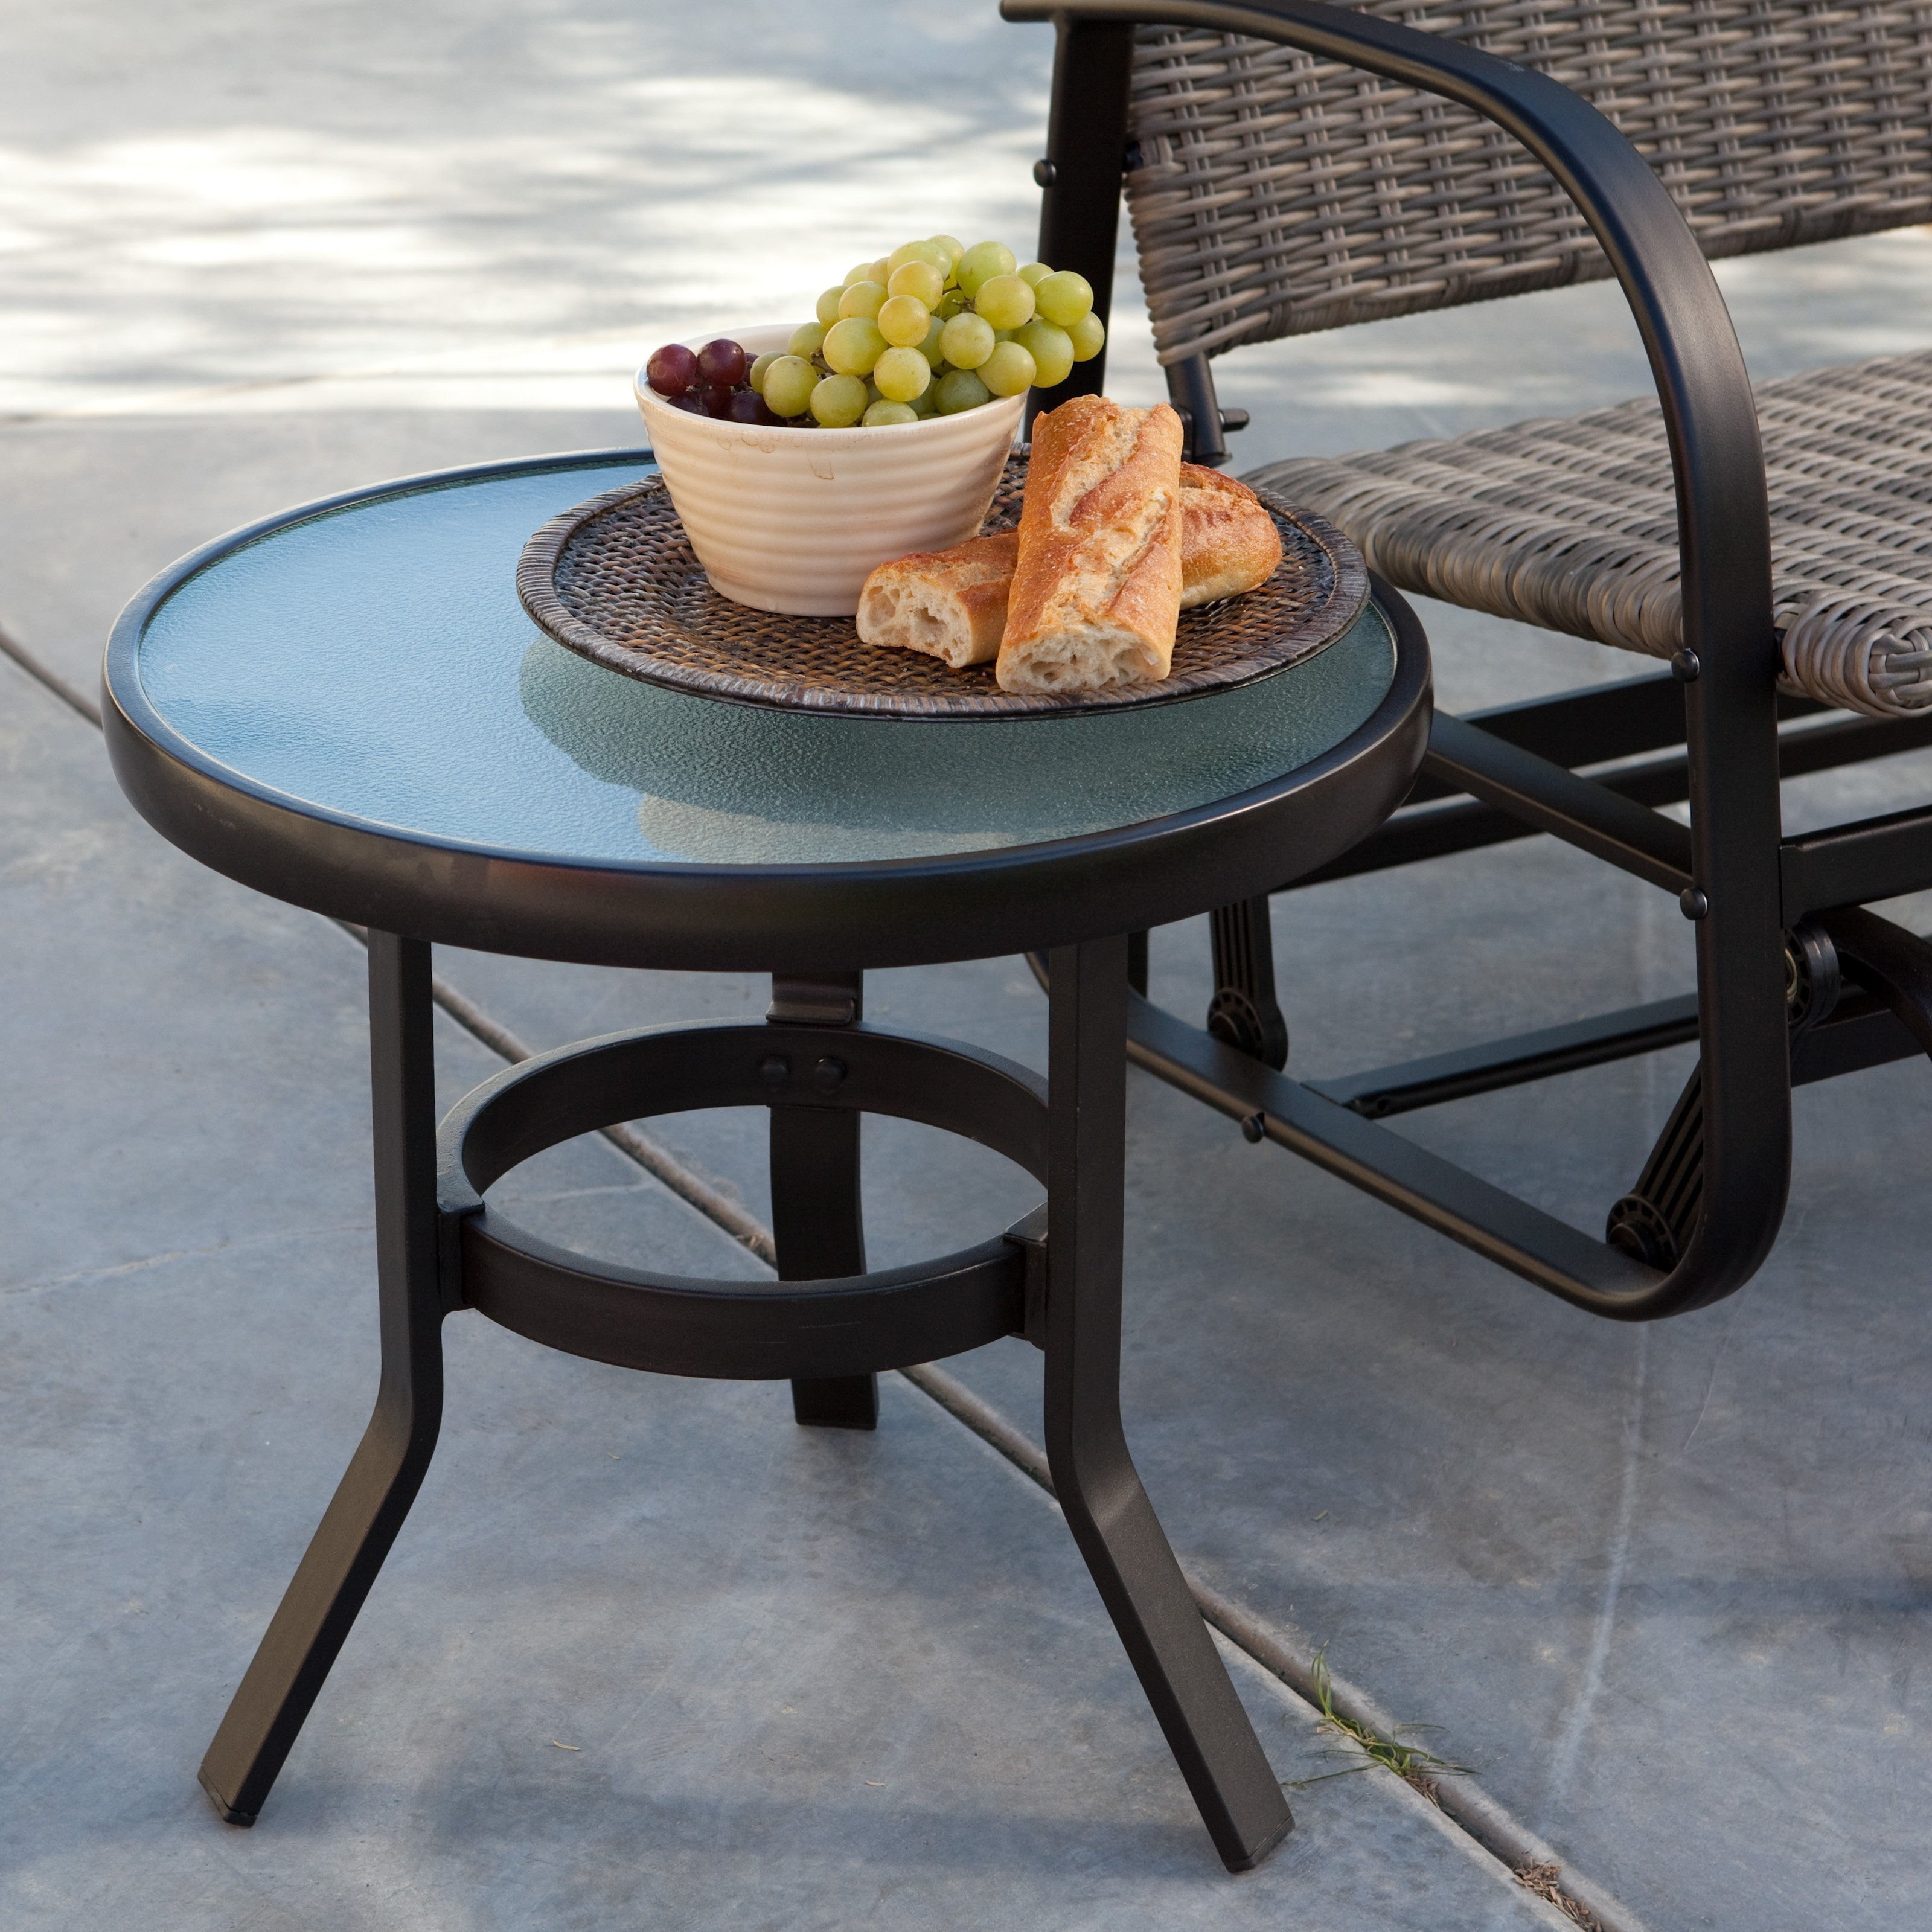 Walmart Table: Coral Coast 20 In. Patio Side Table